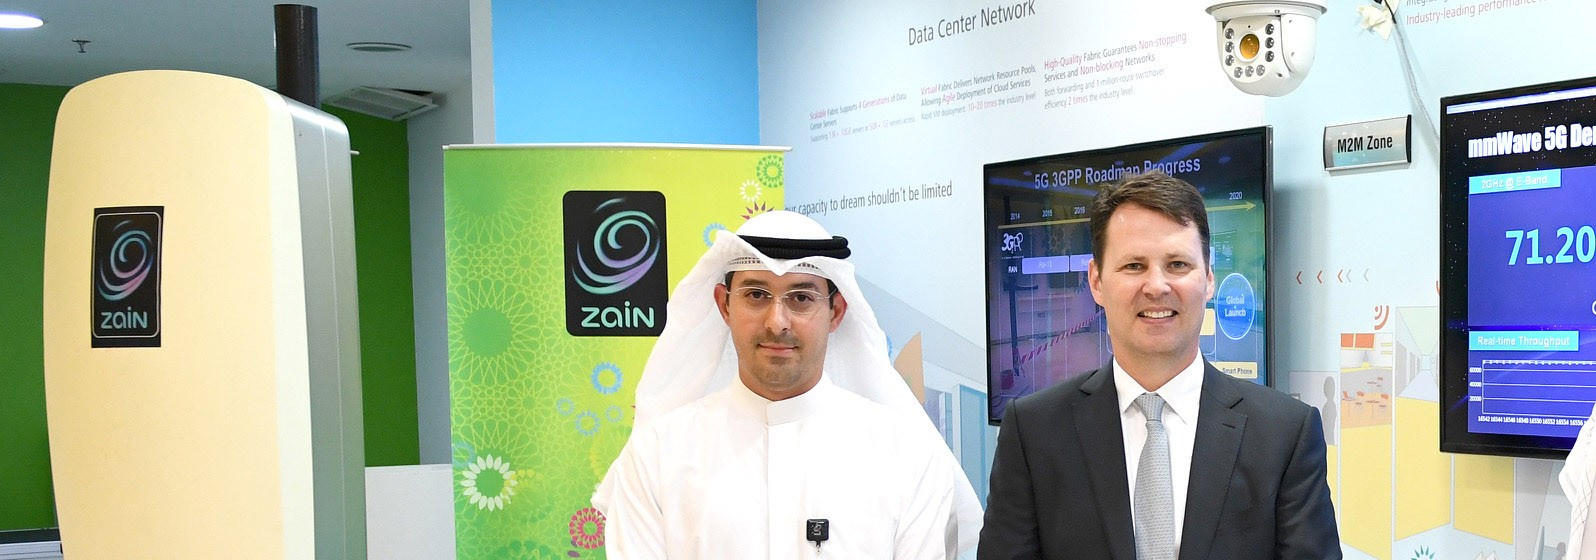 Zain launches the first integrated 5G network in Kuwait - Halberd Bastion